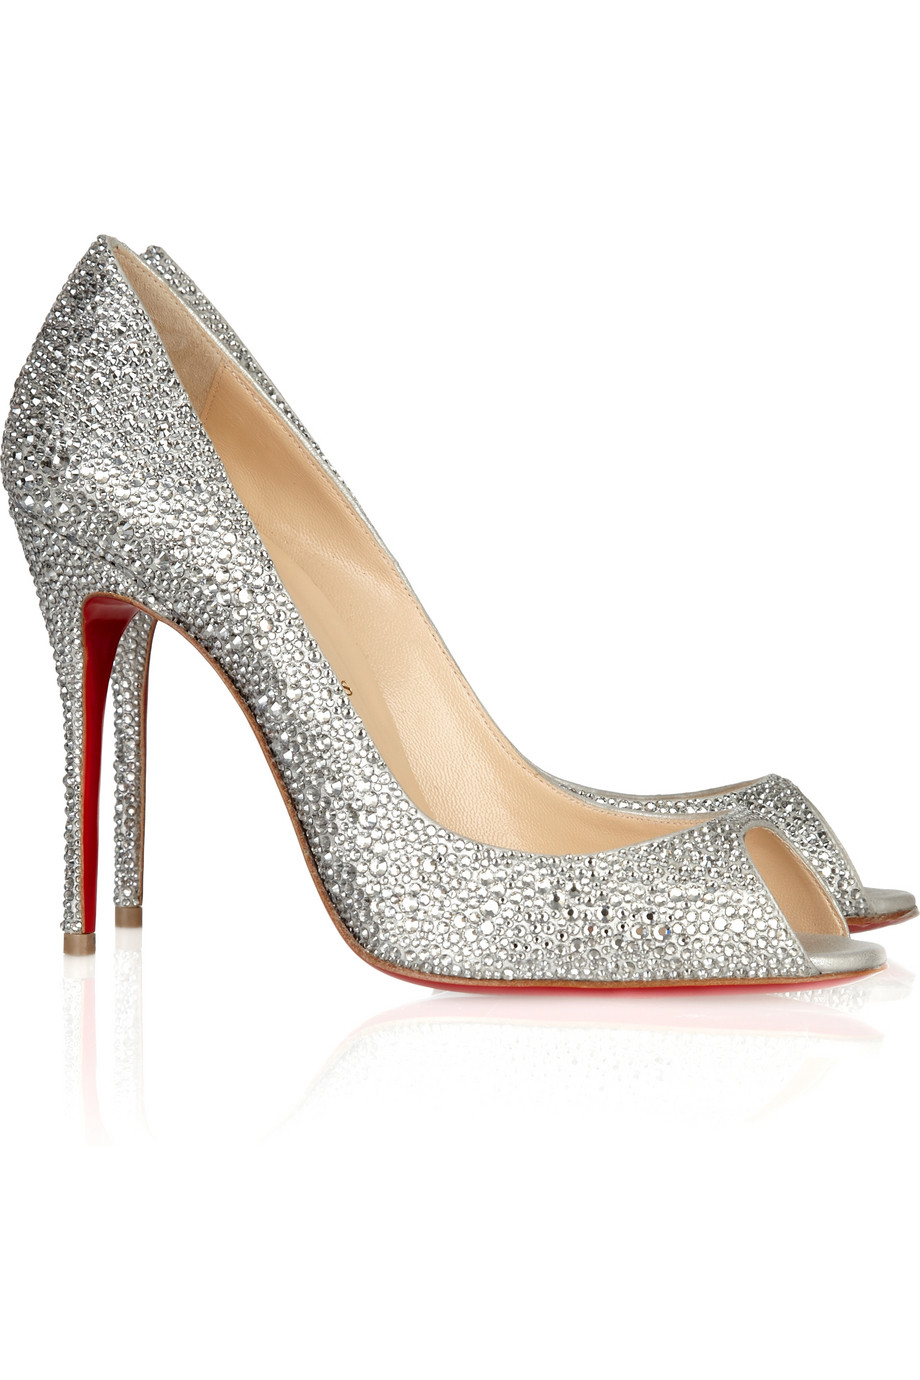 Christian Louboutin Crystal Encrusted Suede Pump In